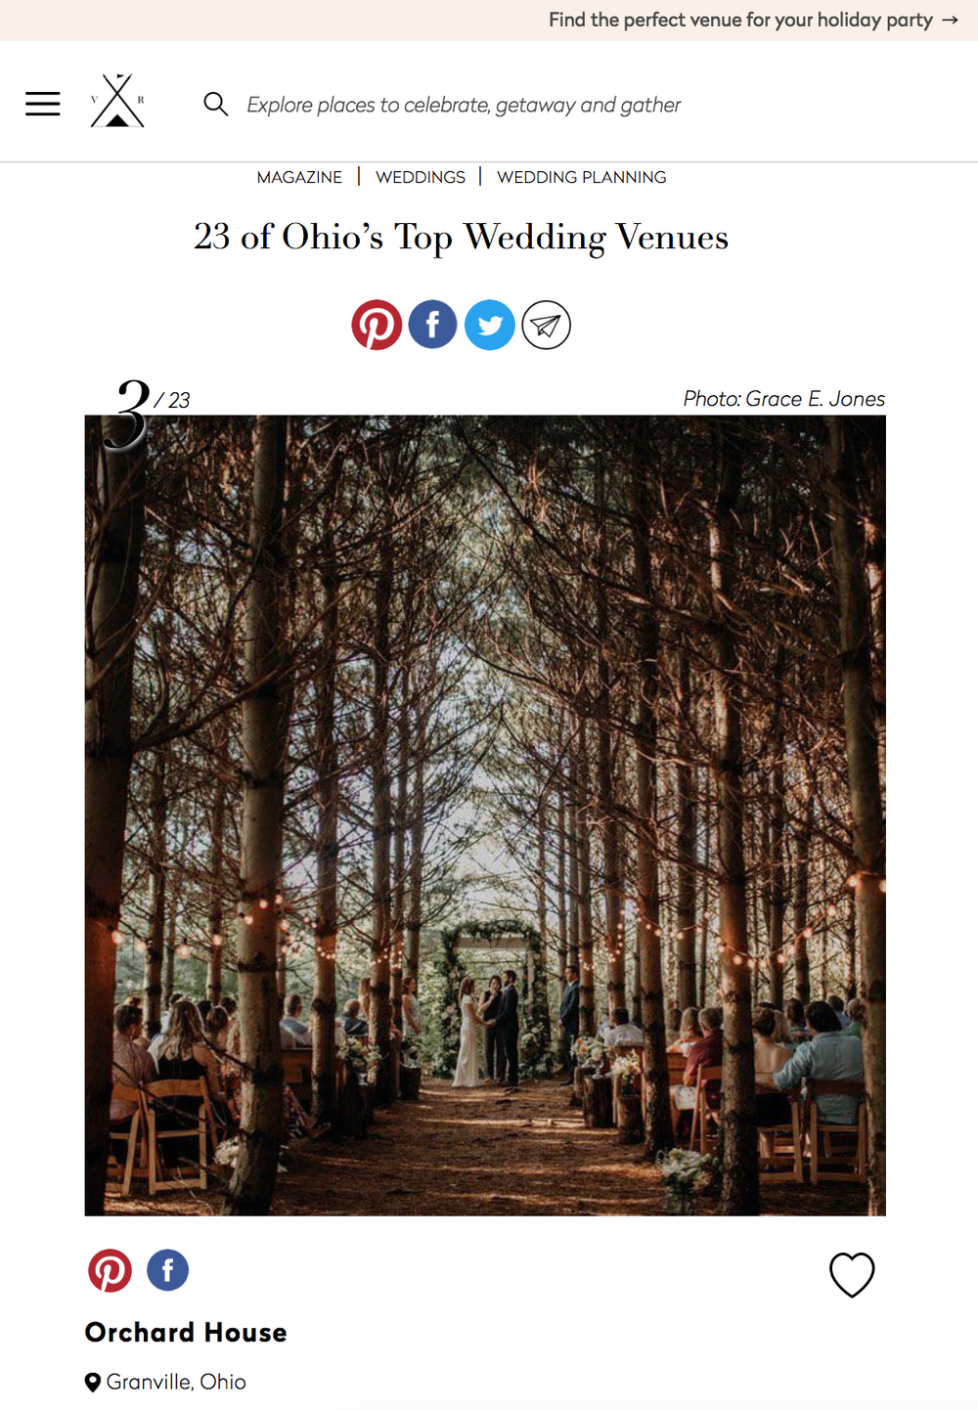 venue-report-ohio-top-wedding-venues.png